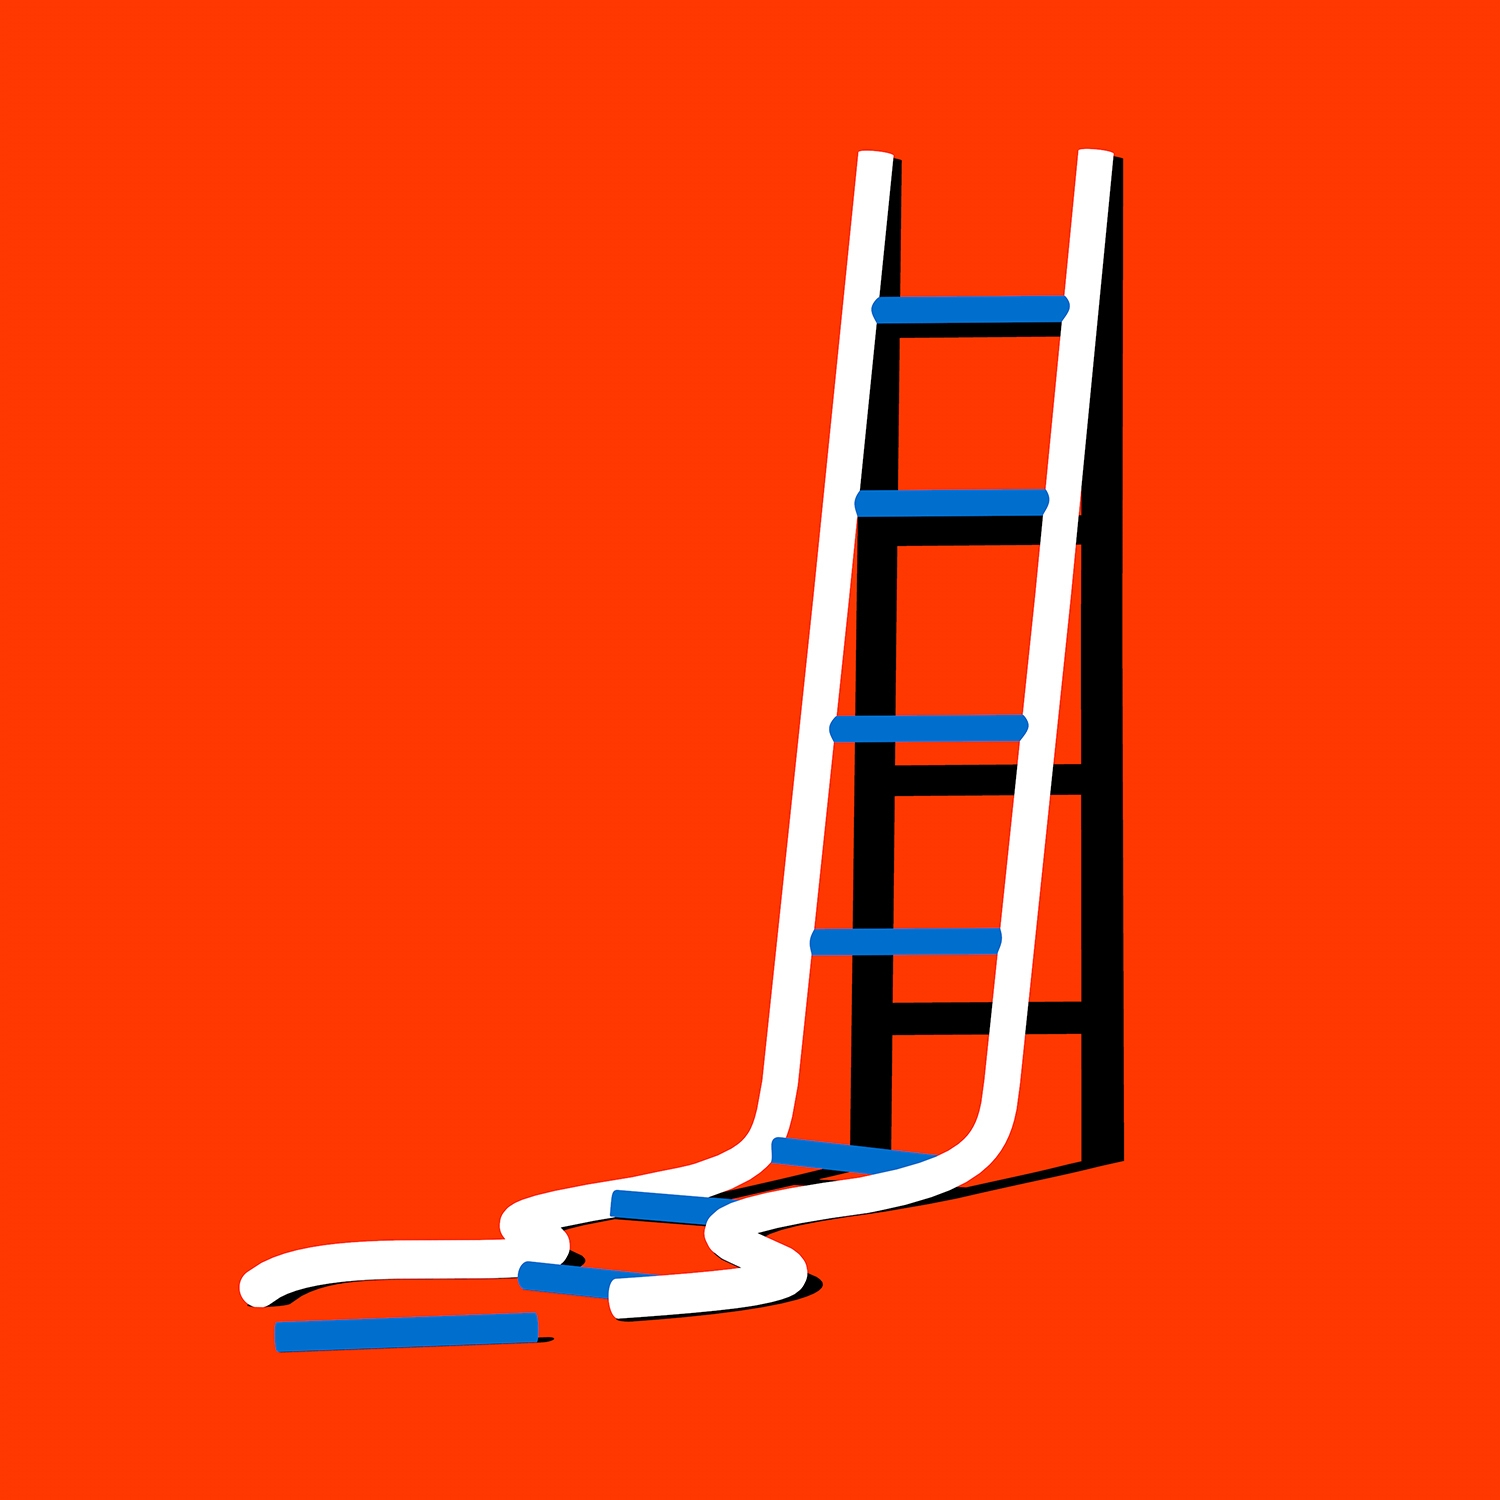 broken ladder, red background, illustration